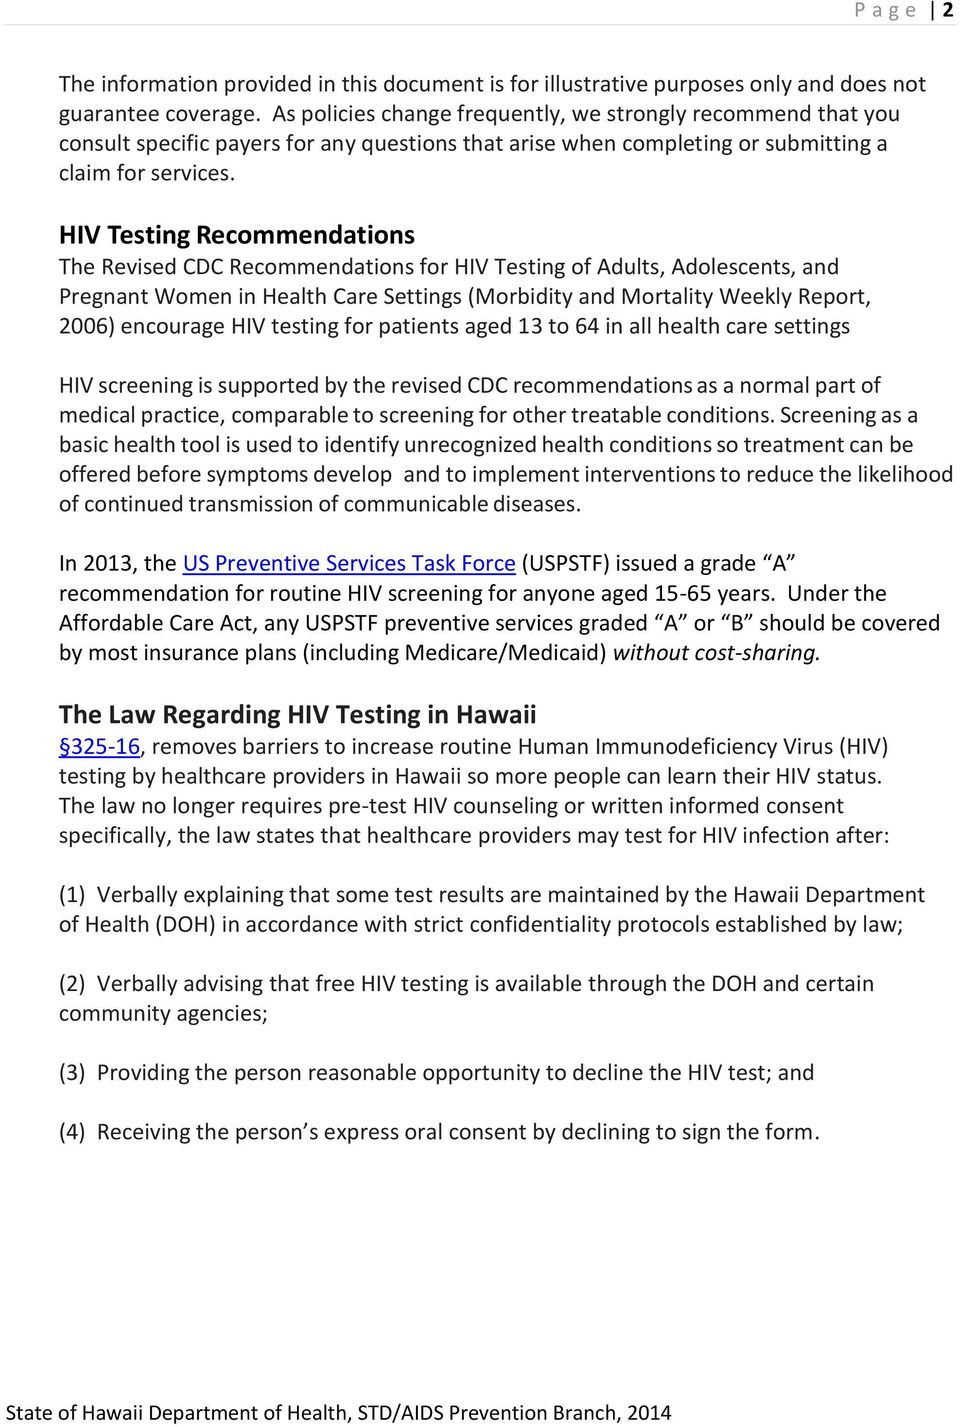 HIV Testing Recommendations The Revised CDC Recommendations for HIV Testing of Adults, Adolescents, and Pregnant Women in Health Care Settings (Morbidity and Mortality Weekly Report, 2006) encourage